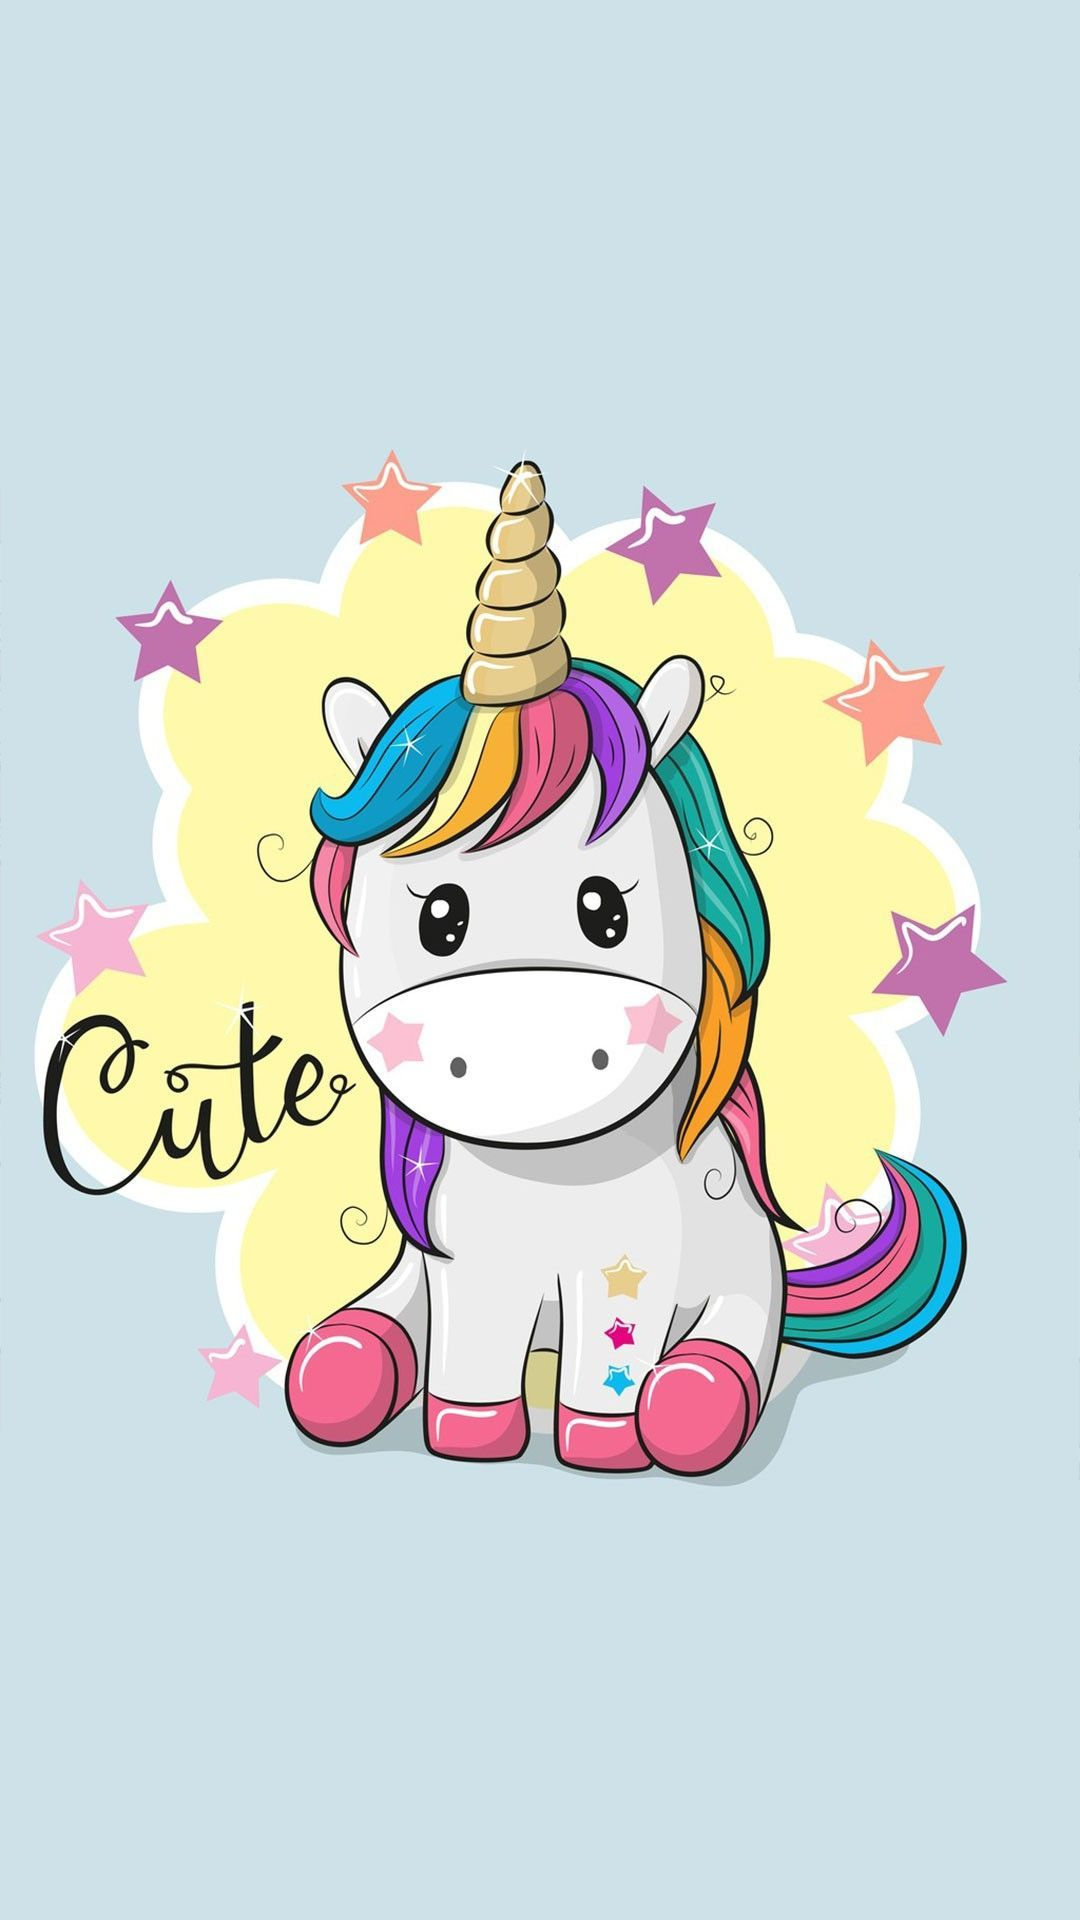 71 712307 hilal ylmaz ay on cute unicorn wallpaper cartoon